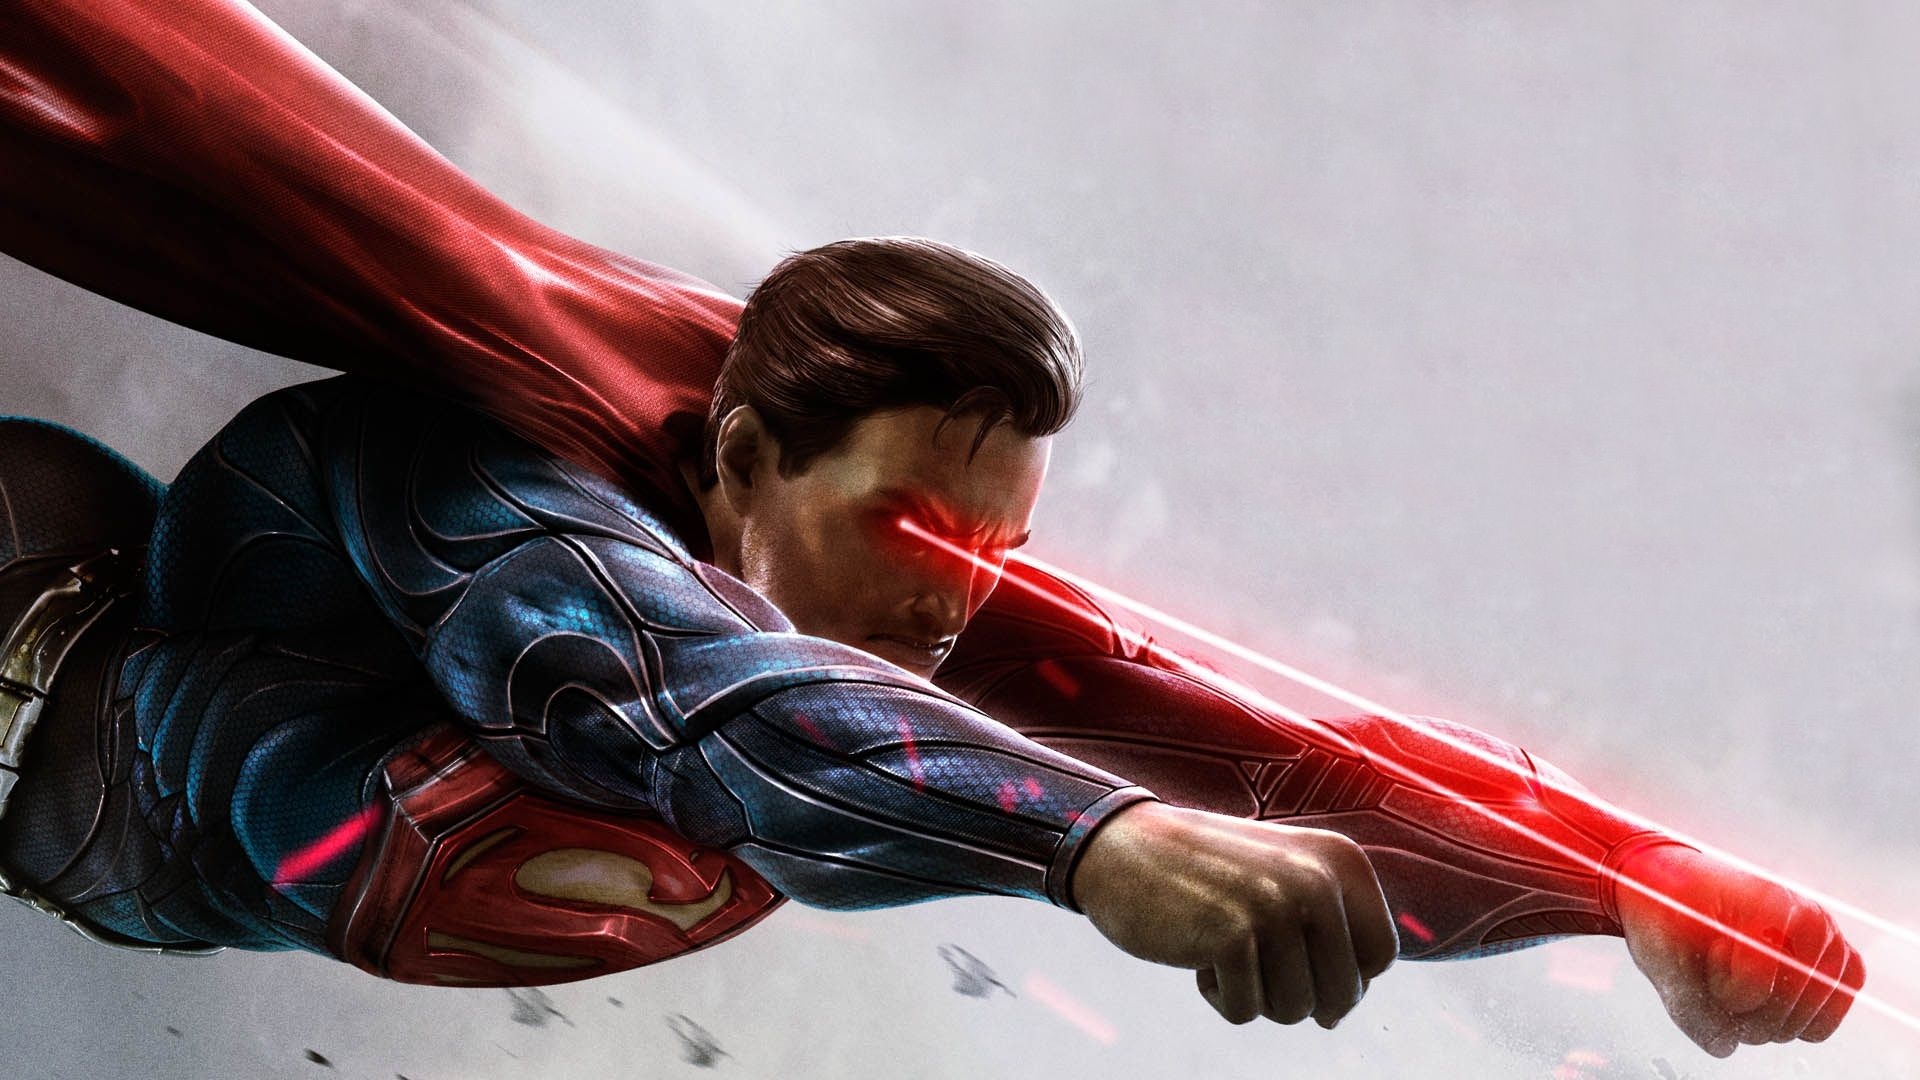 Black And Red Hd Wallpaper Of Superman